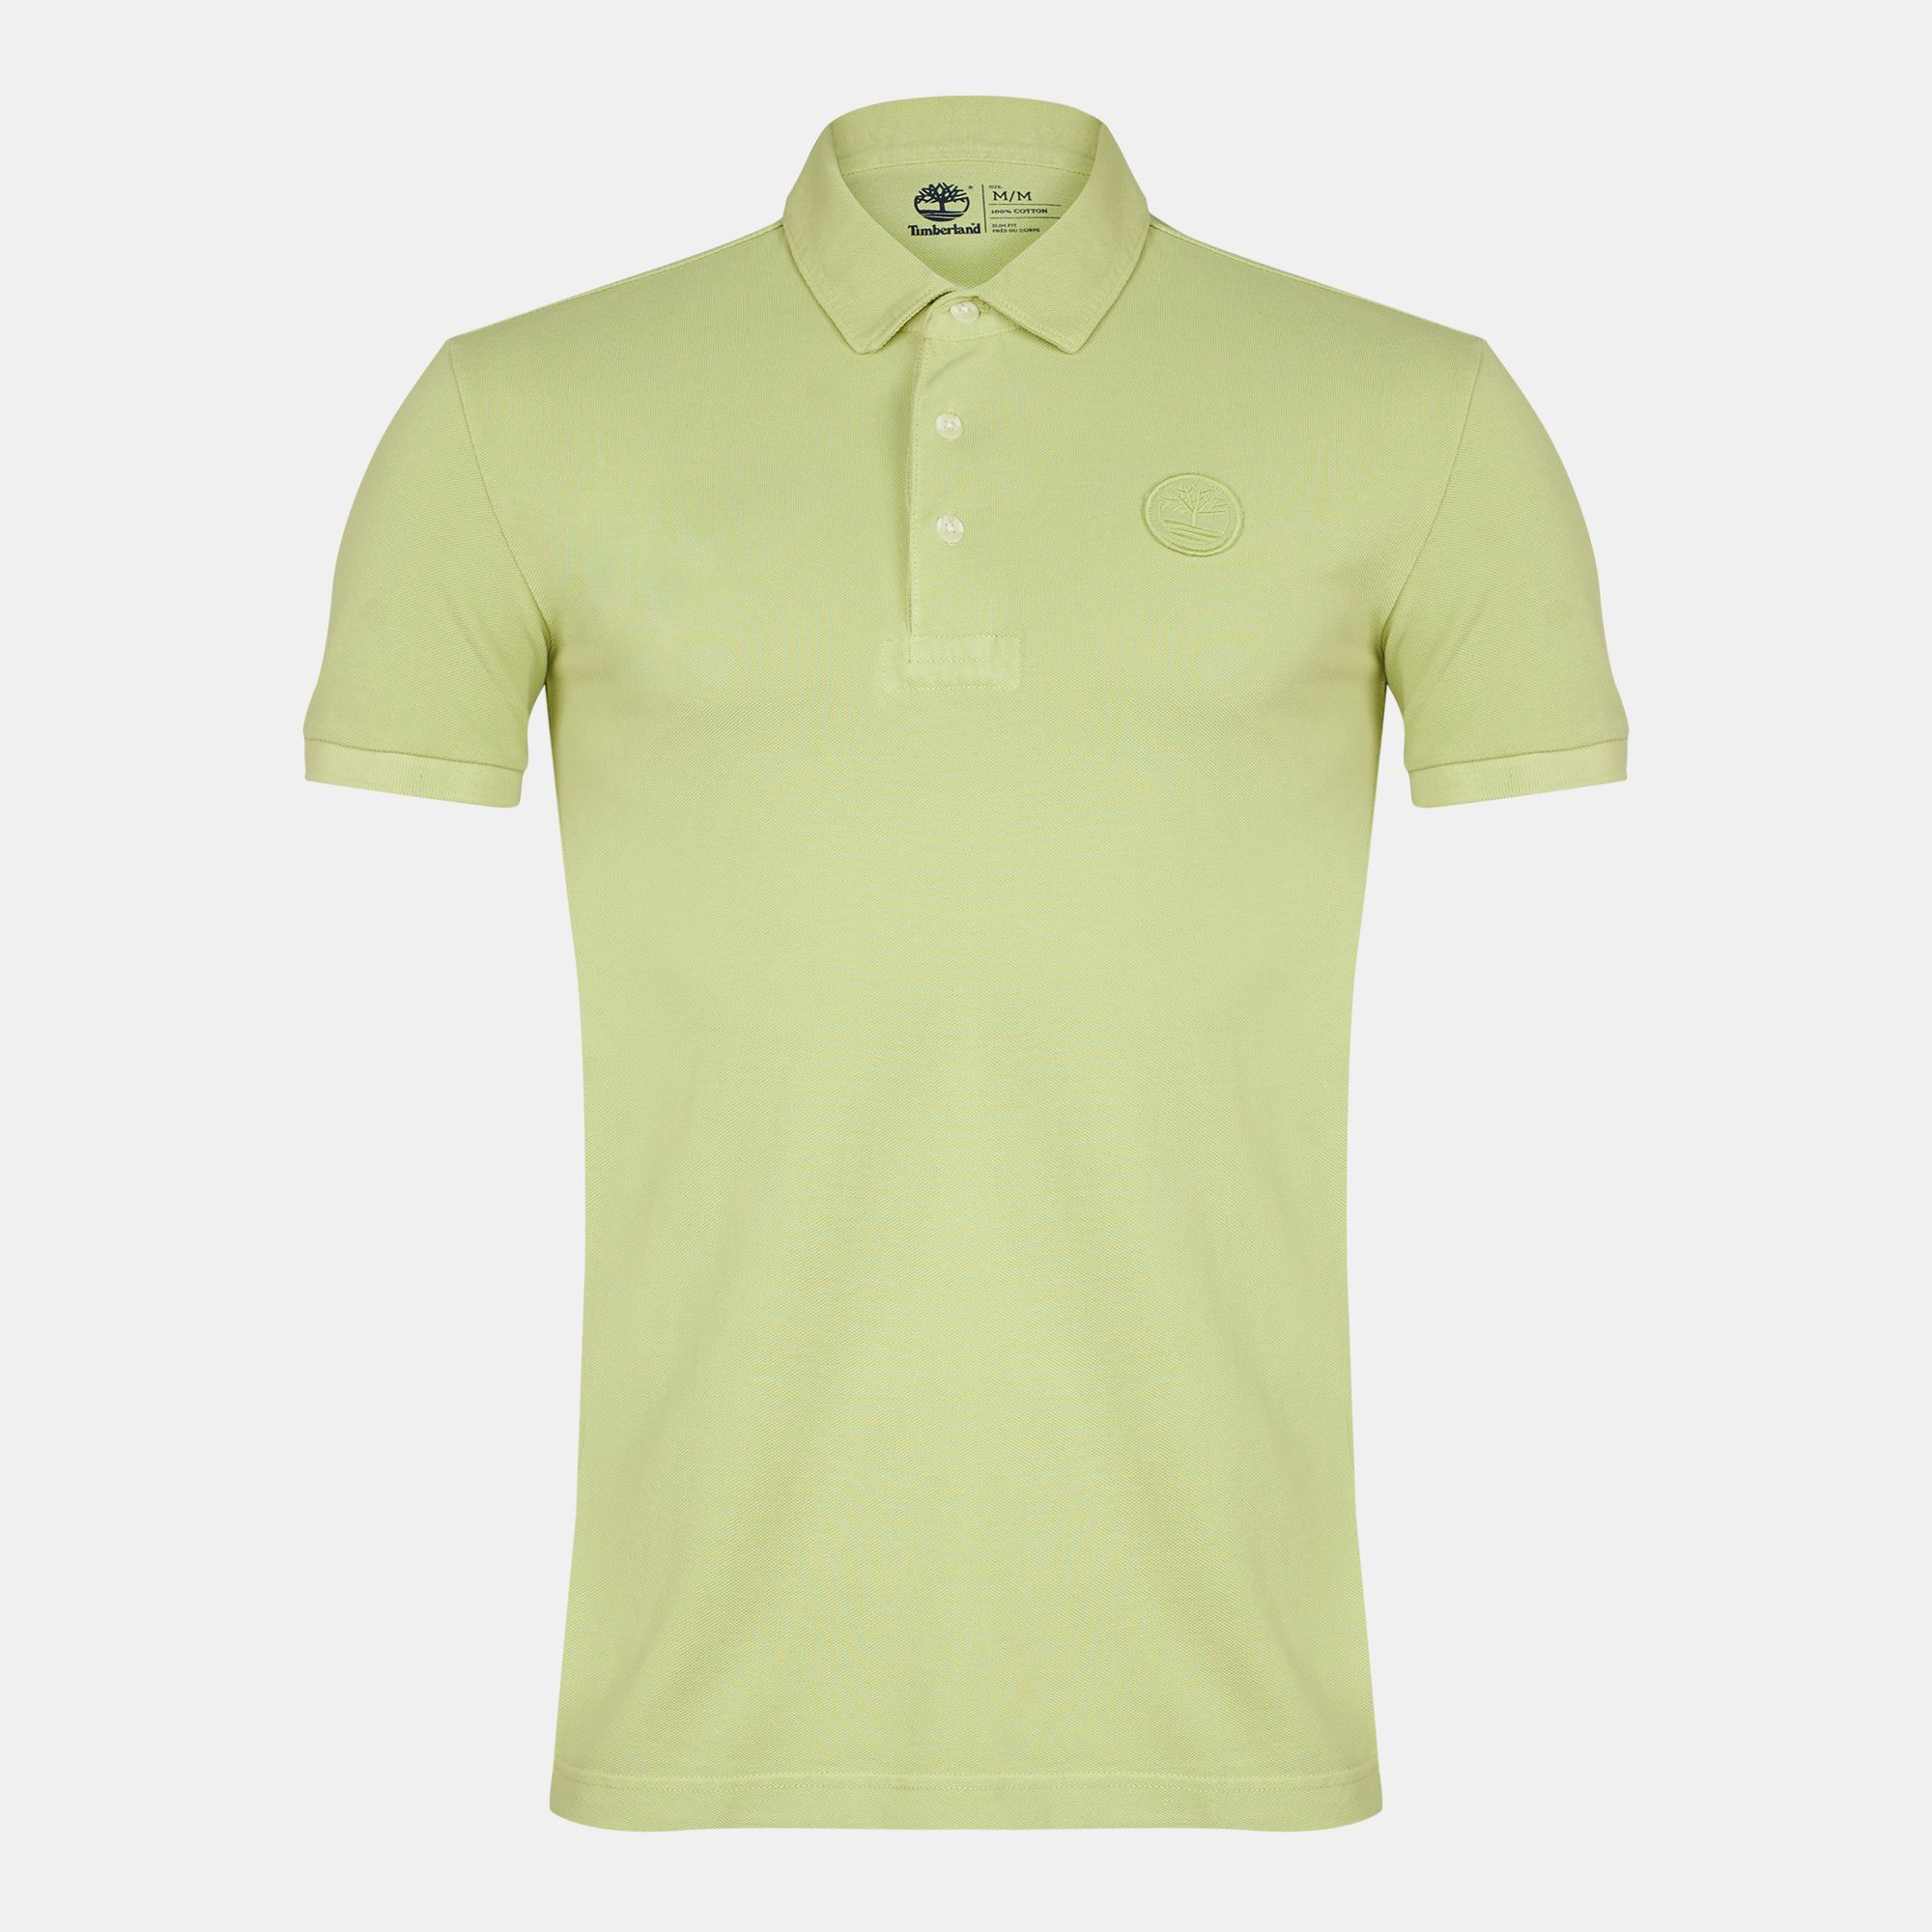 eaa8d44c18ce Shop Green Timberland Milford Washed Pique Polo T-Shirt for Mens by  Timberland | SSS